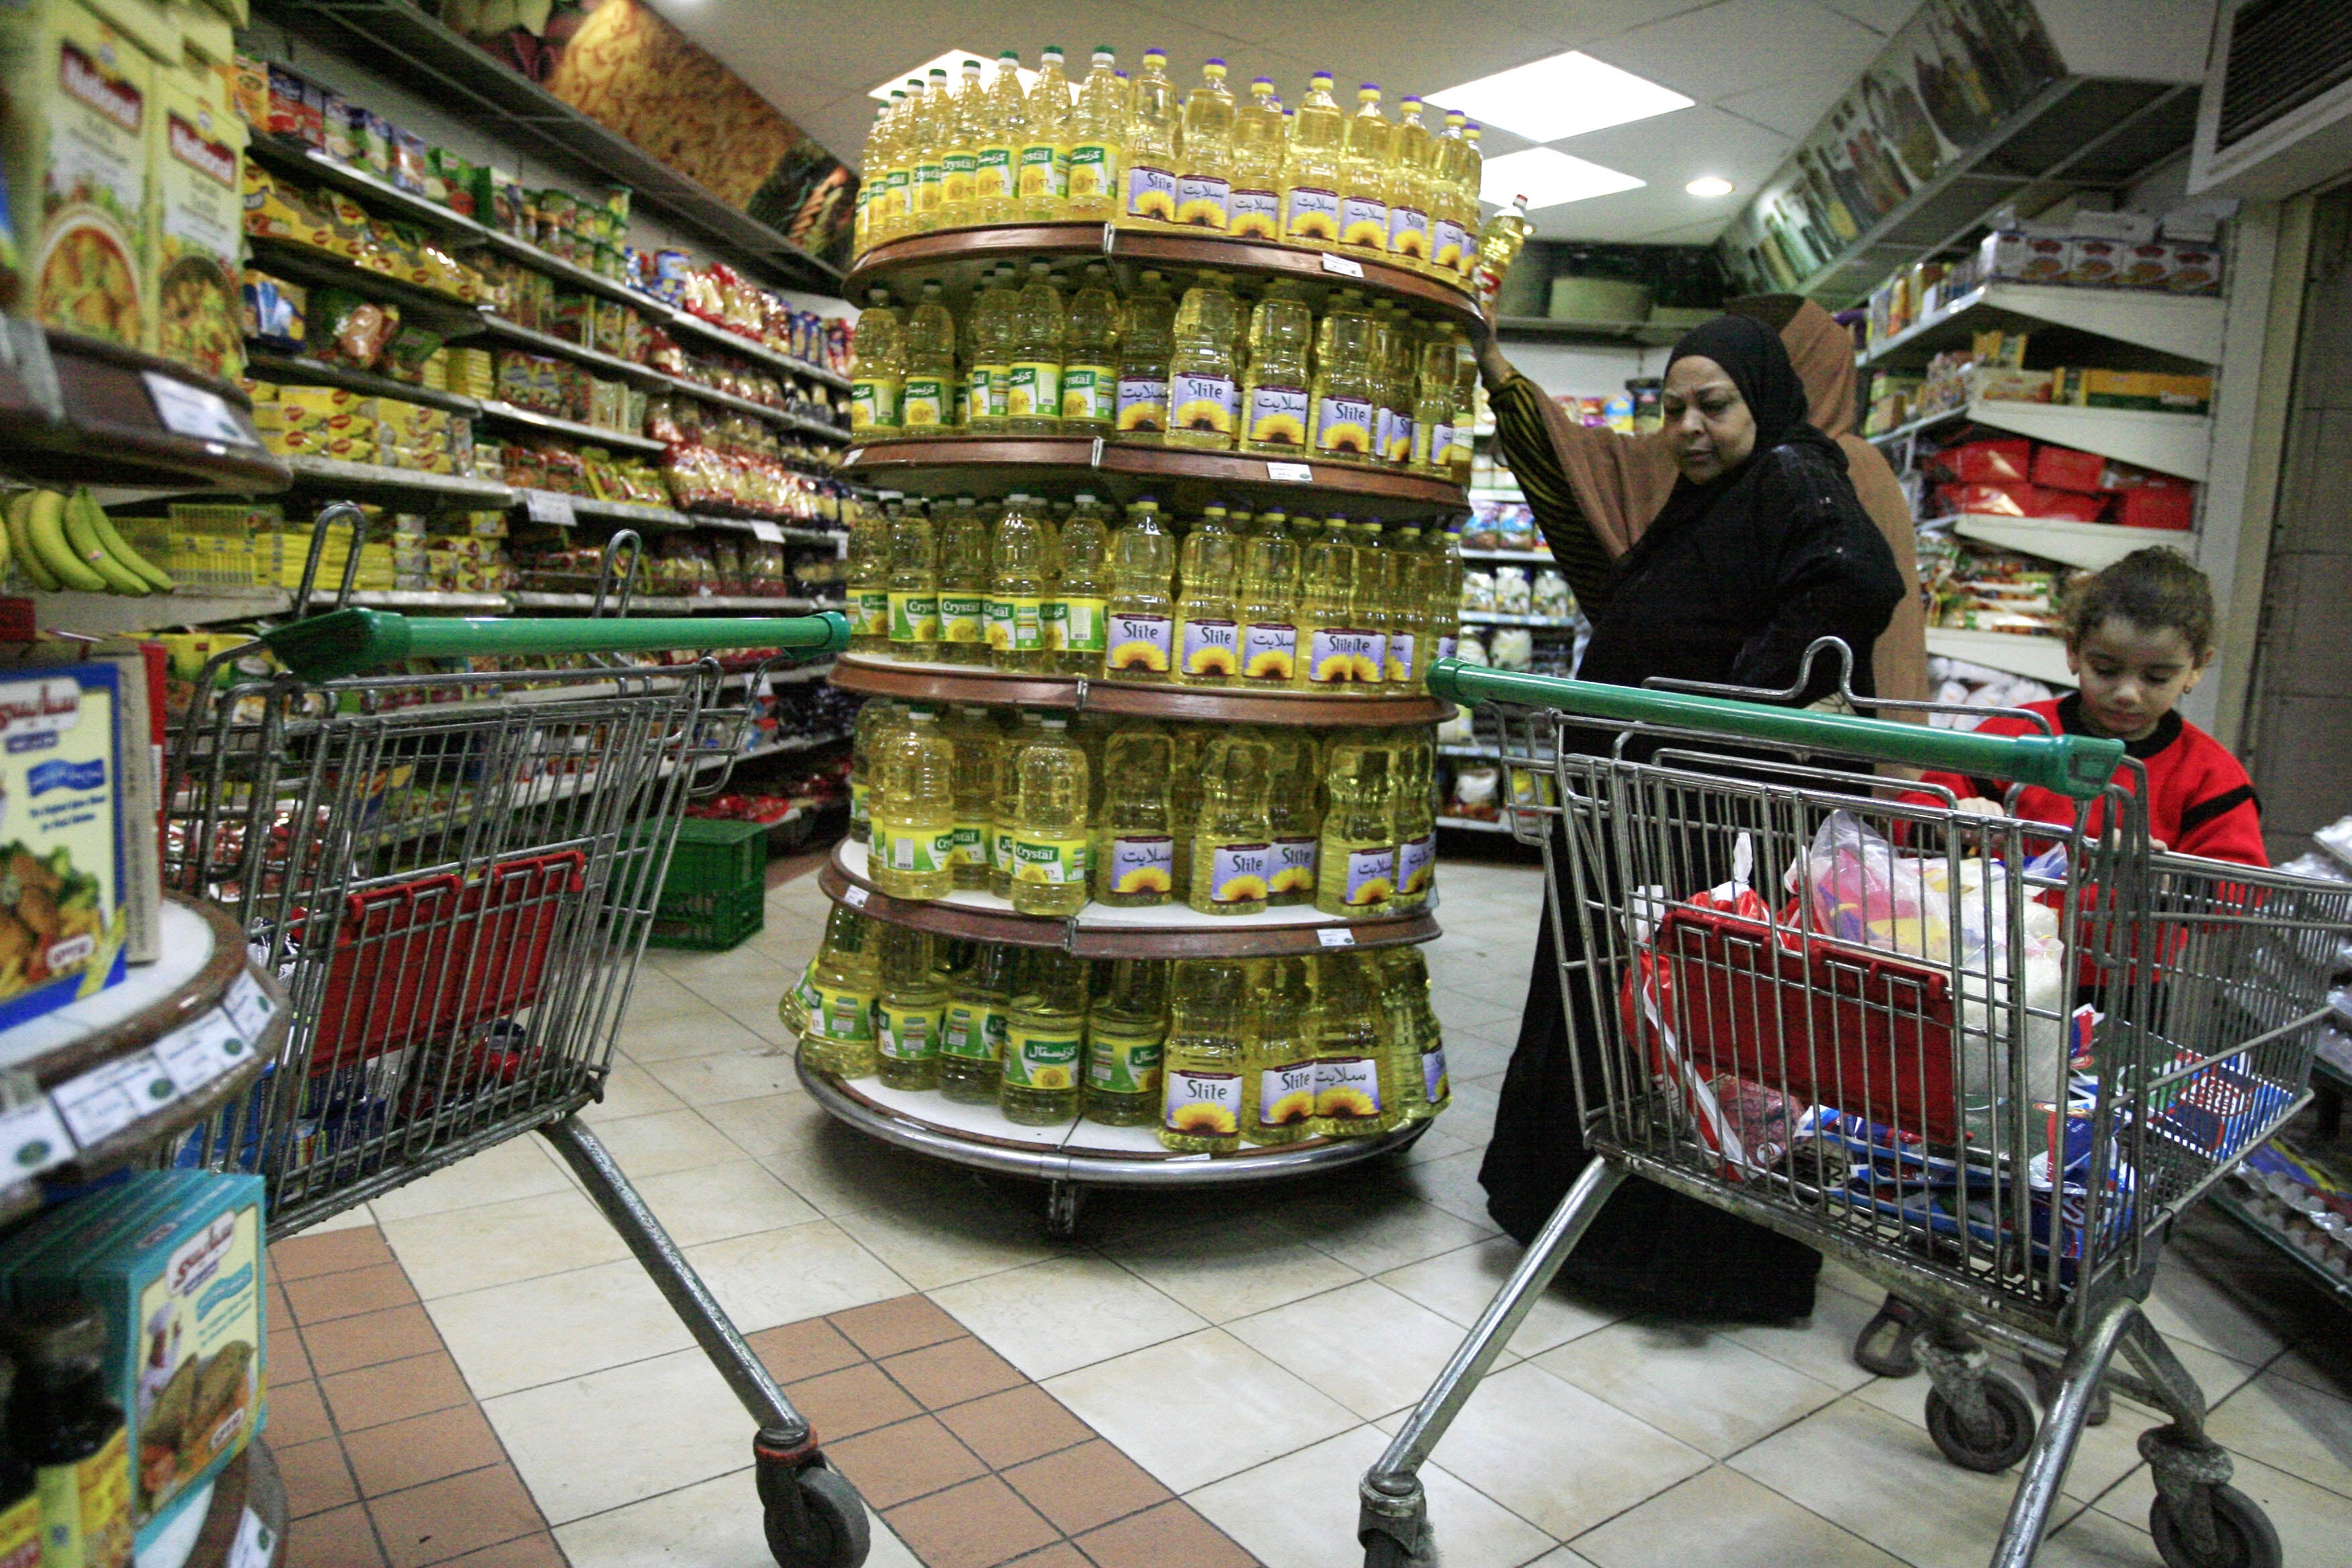 Egyptian consumers and supermarkets stock up on products ahead of June 30 in fear of escalations. (AFP Photo / Khaled Desouki)